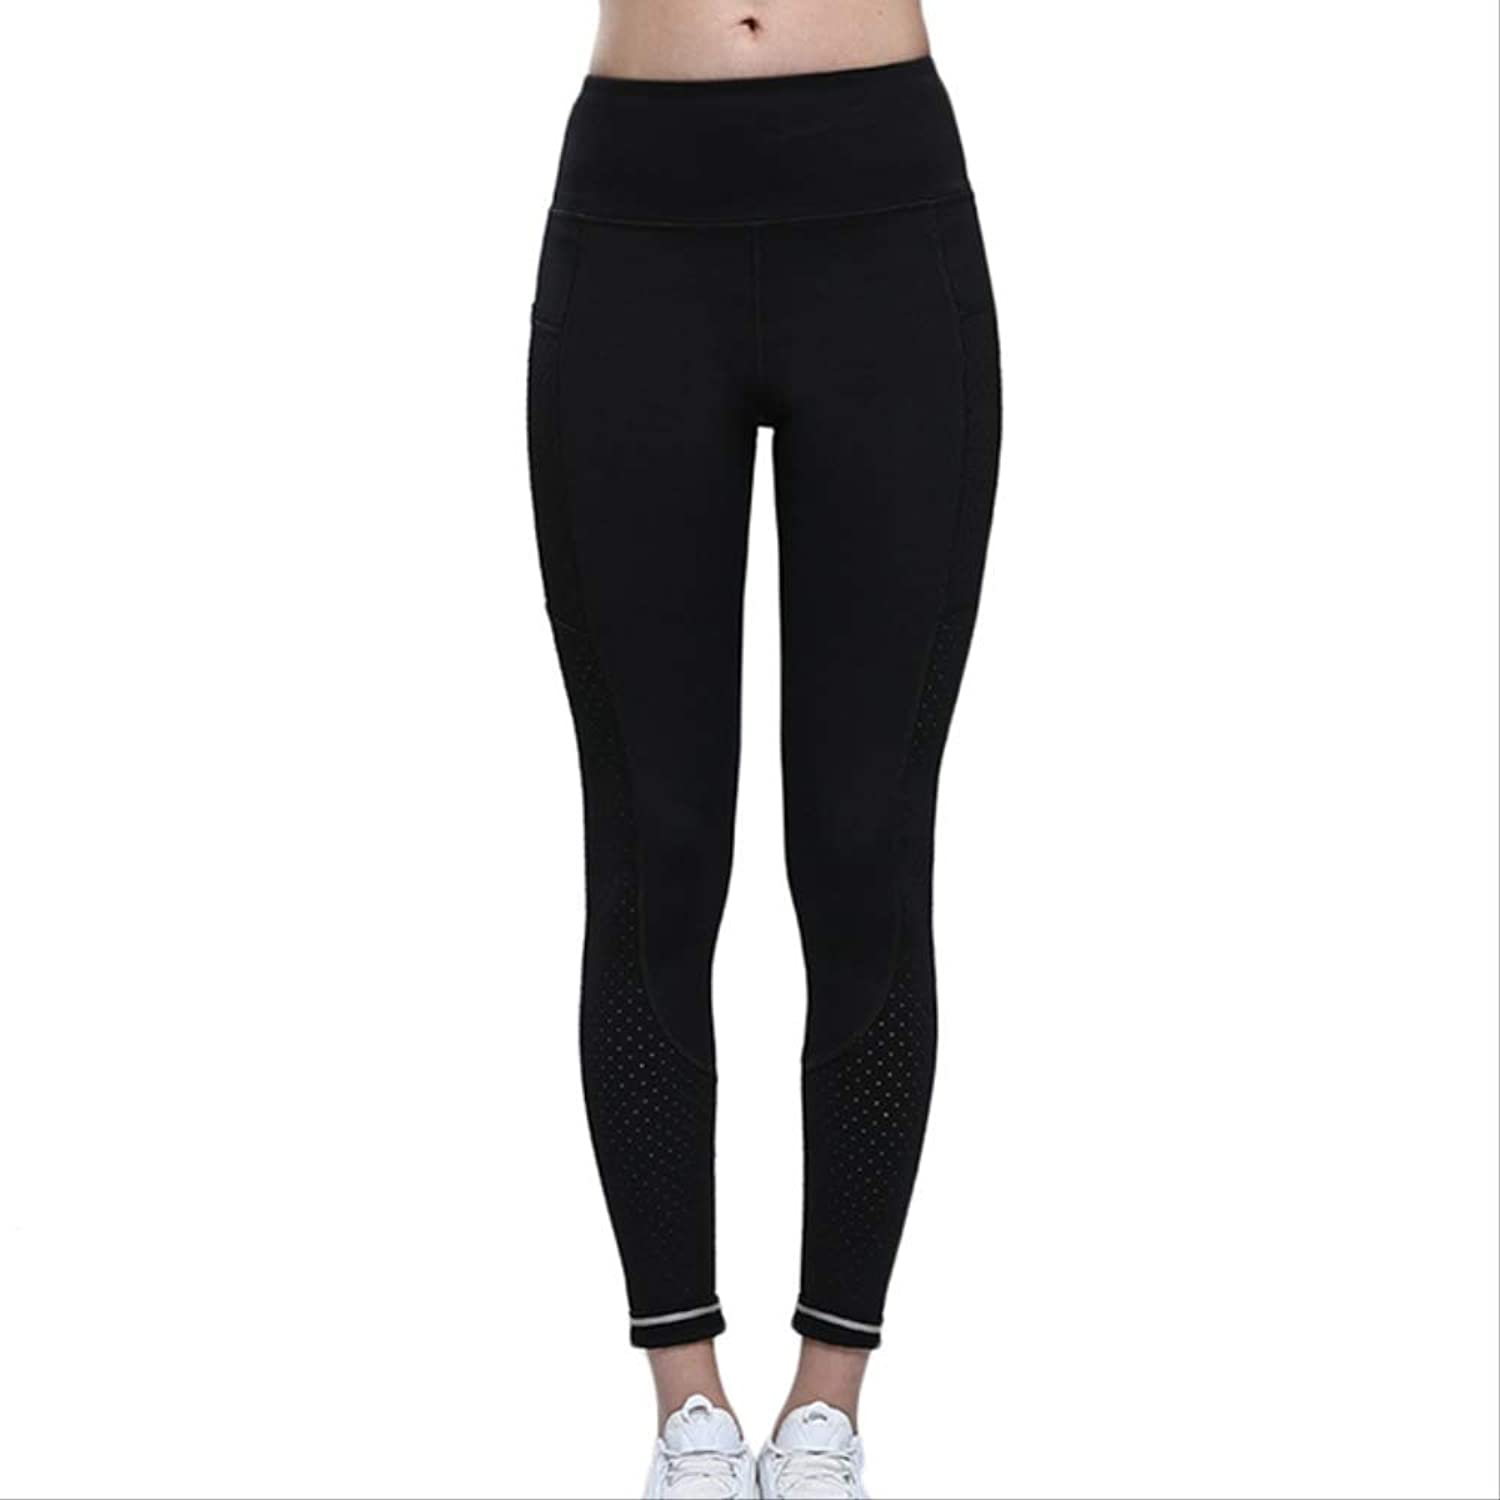 YJKJSK New Women Yoga Pant Breathable Fitness High Elastic High Waisted Butt Lifting Mesh Quick Dry Sports Running Gym Skinny Pants